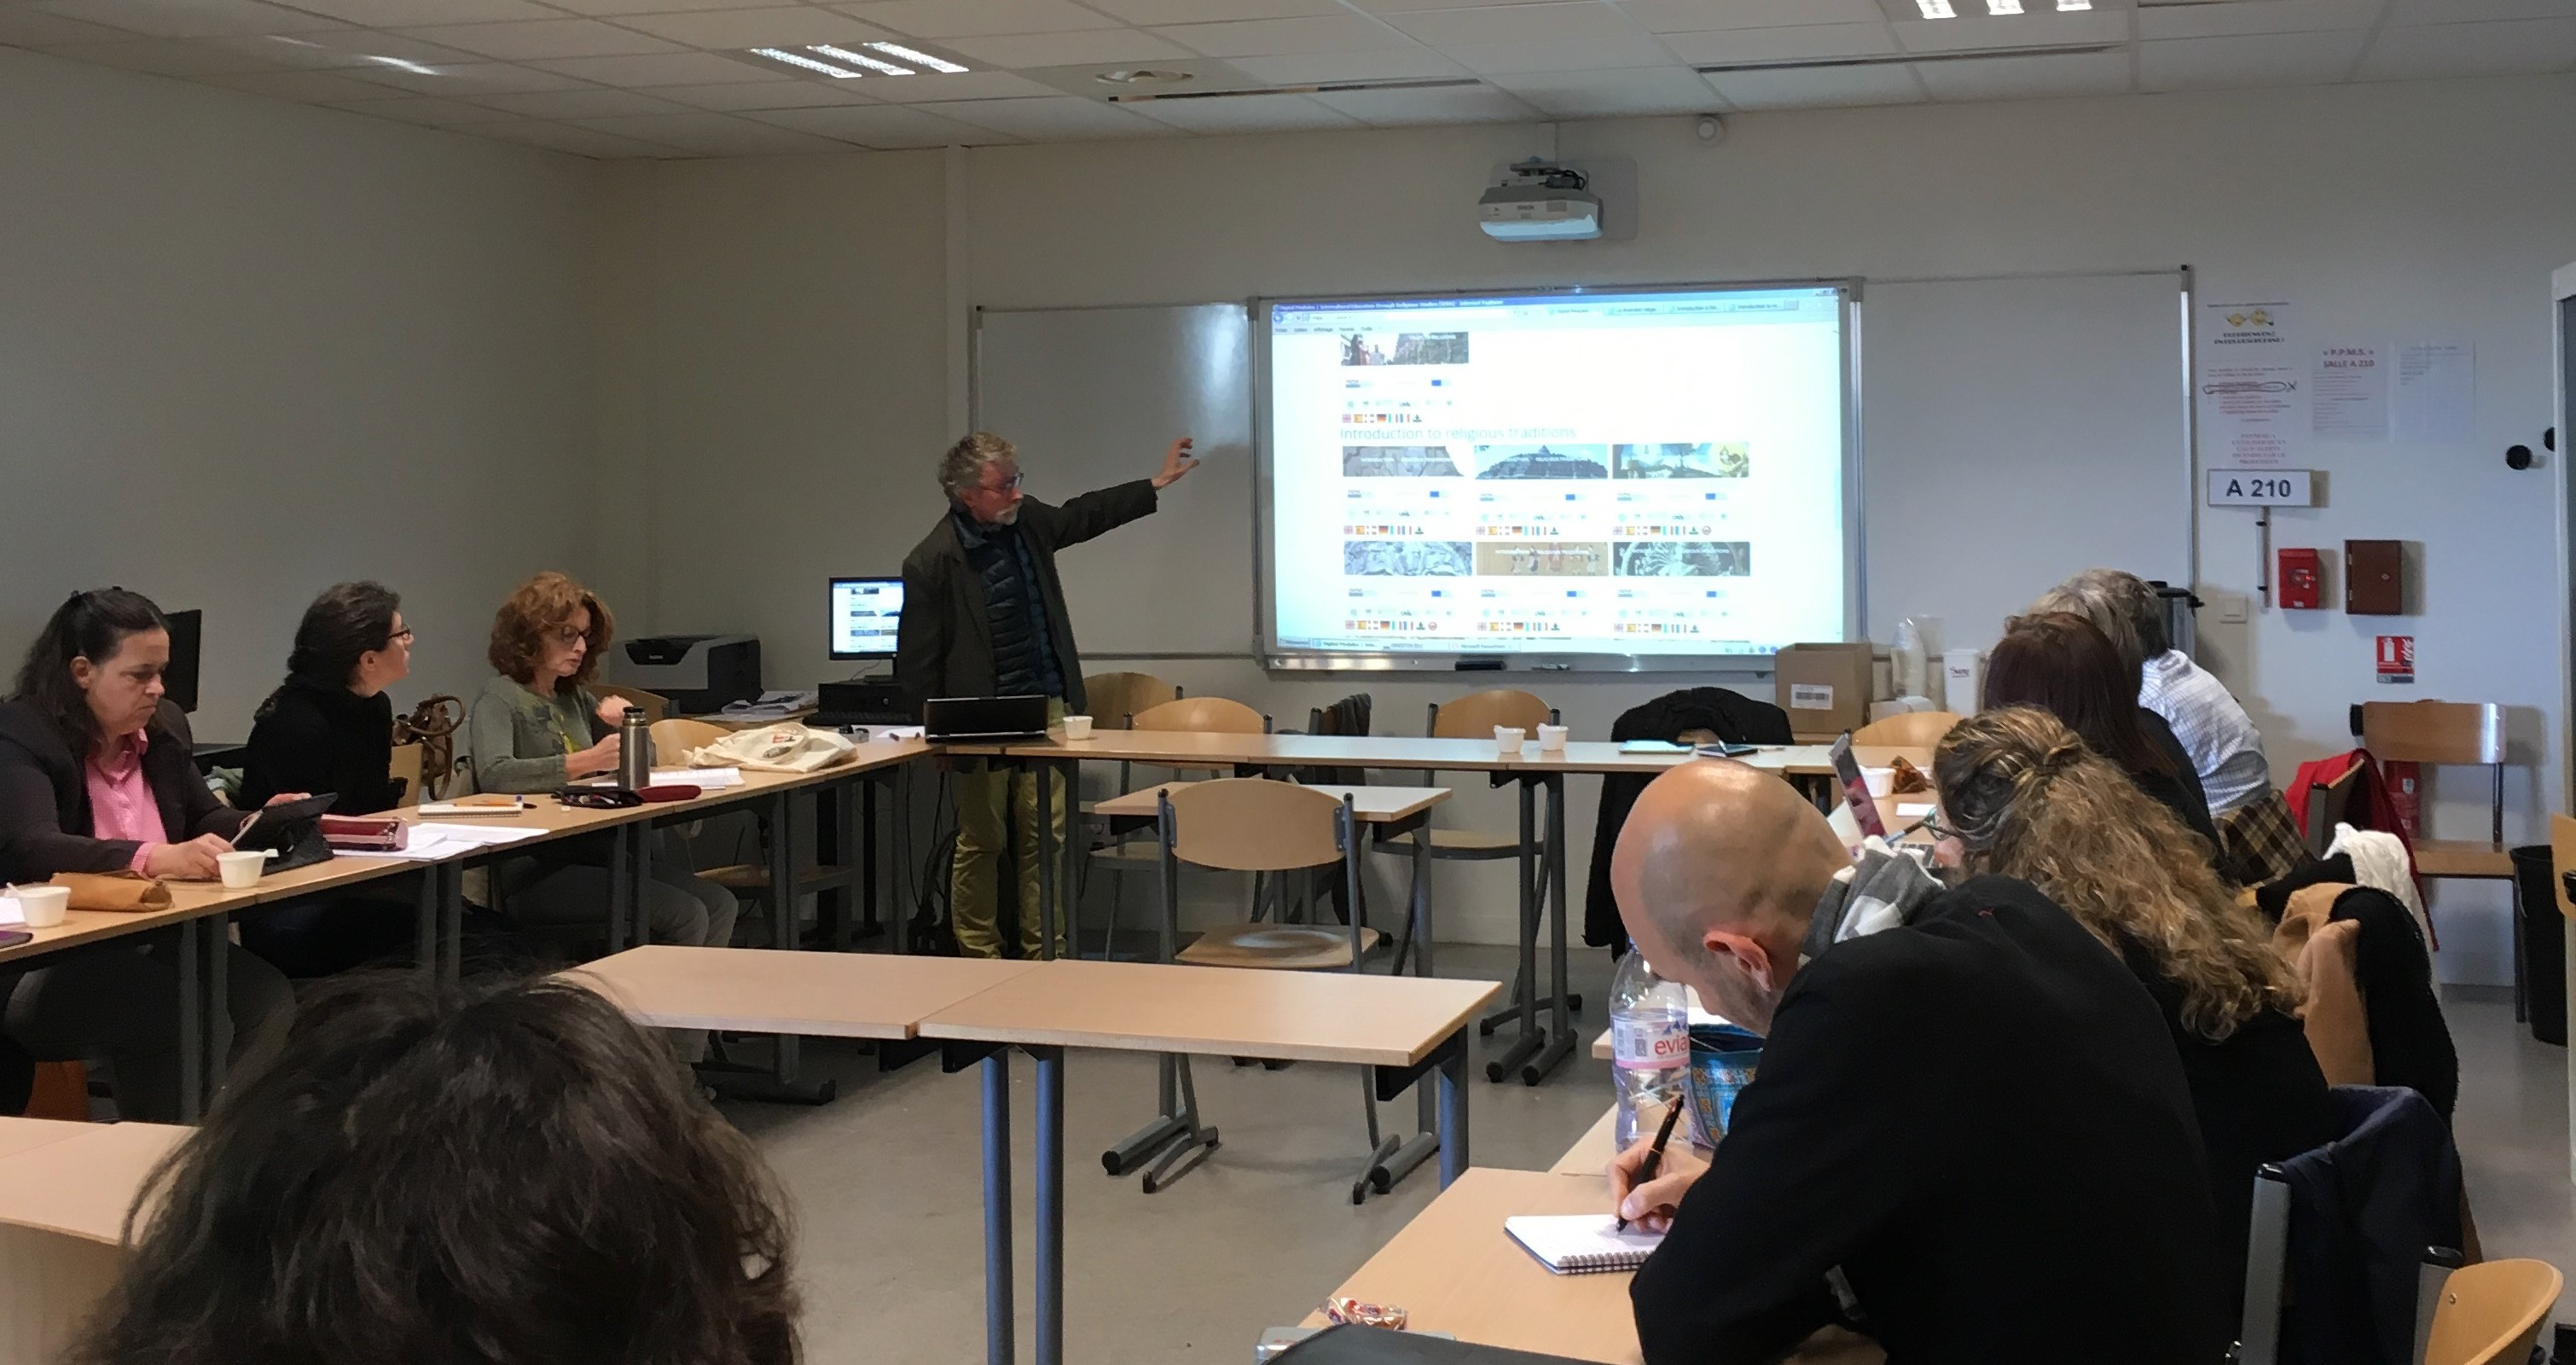 SORAPS Project Presentation at Lycée René Cassin Arpajon (France) in May 2018